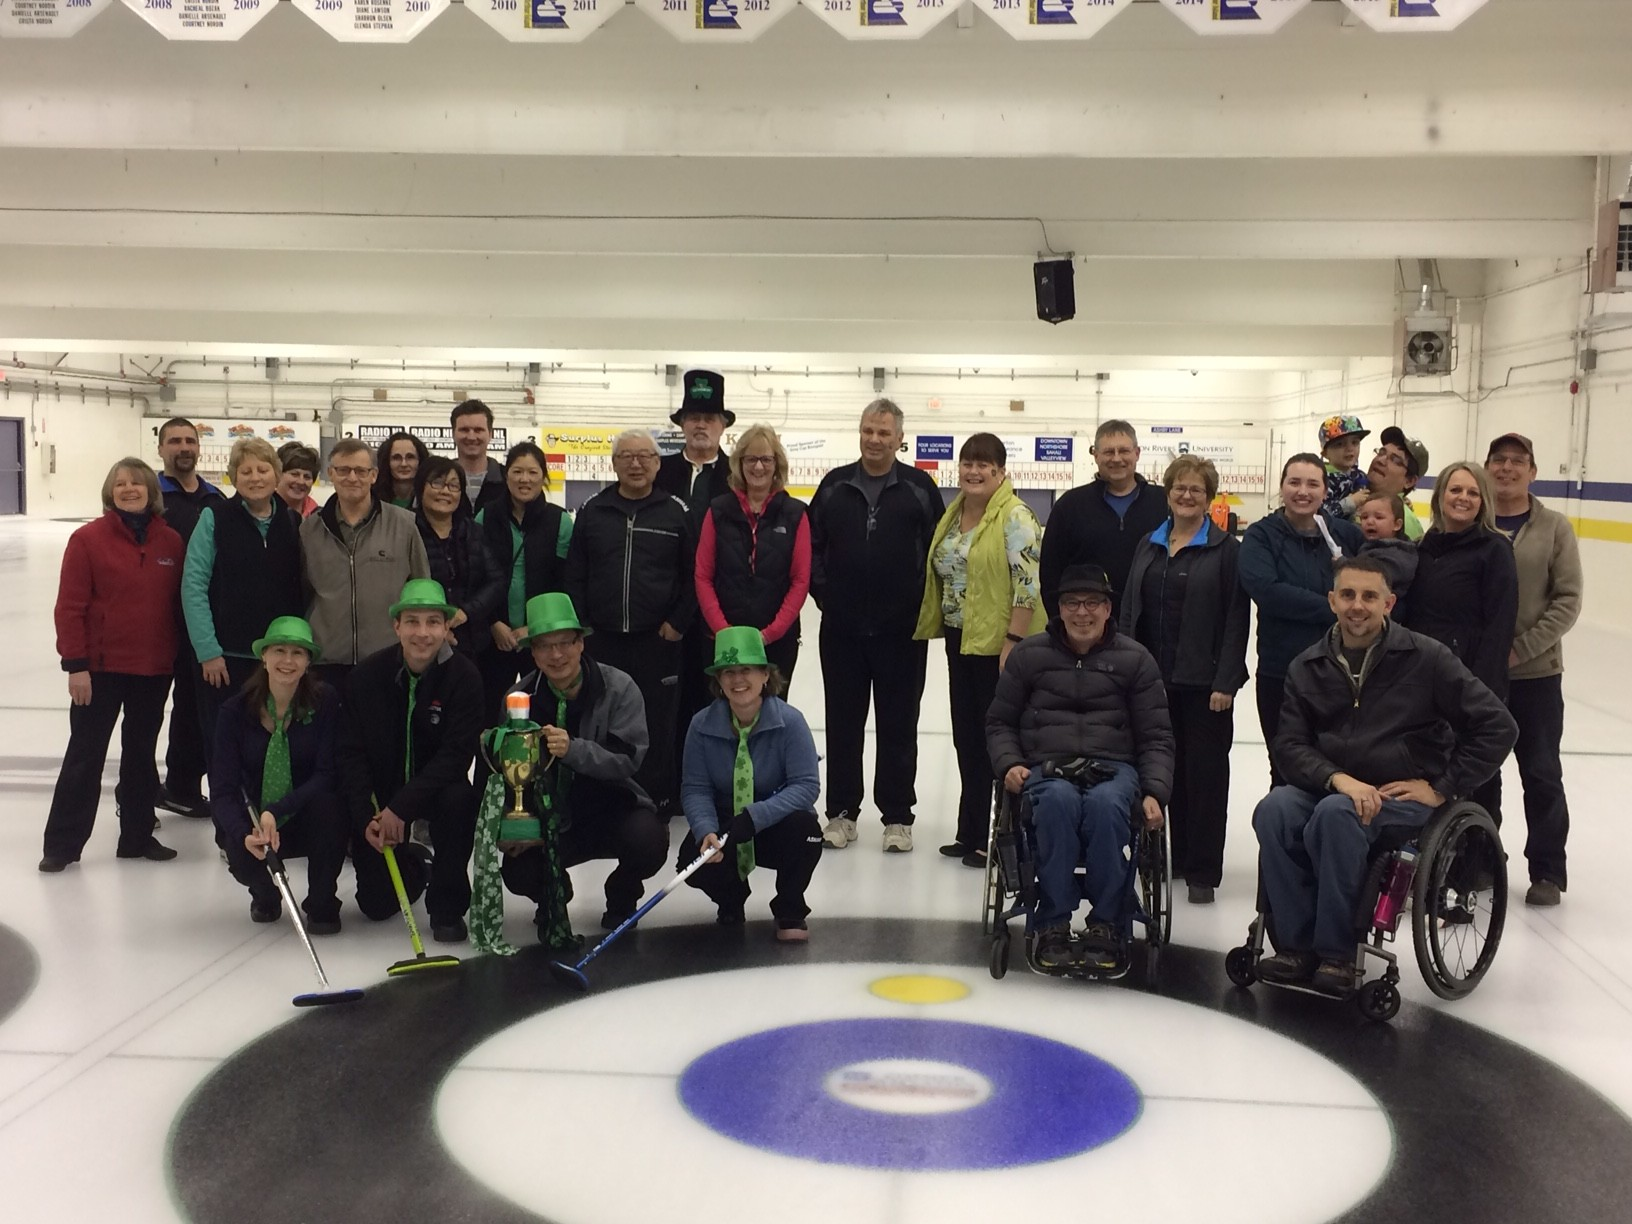 ST PATTYS DAY BONSPIEL WAS A SUCCESS!